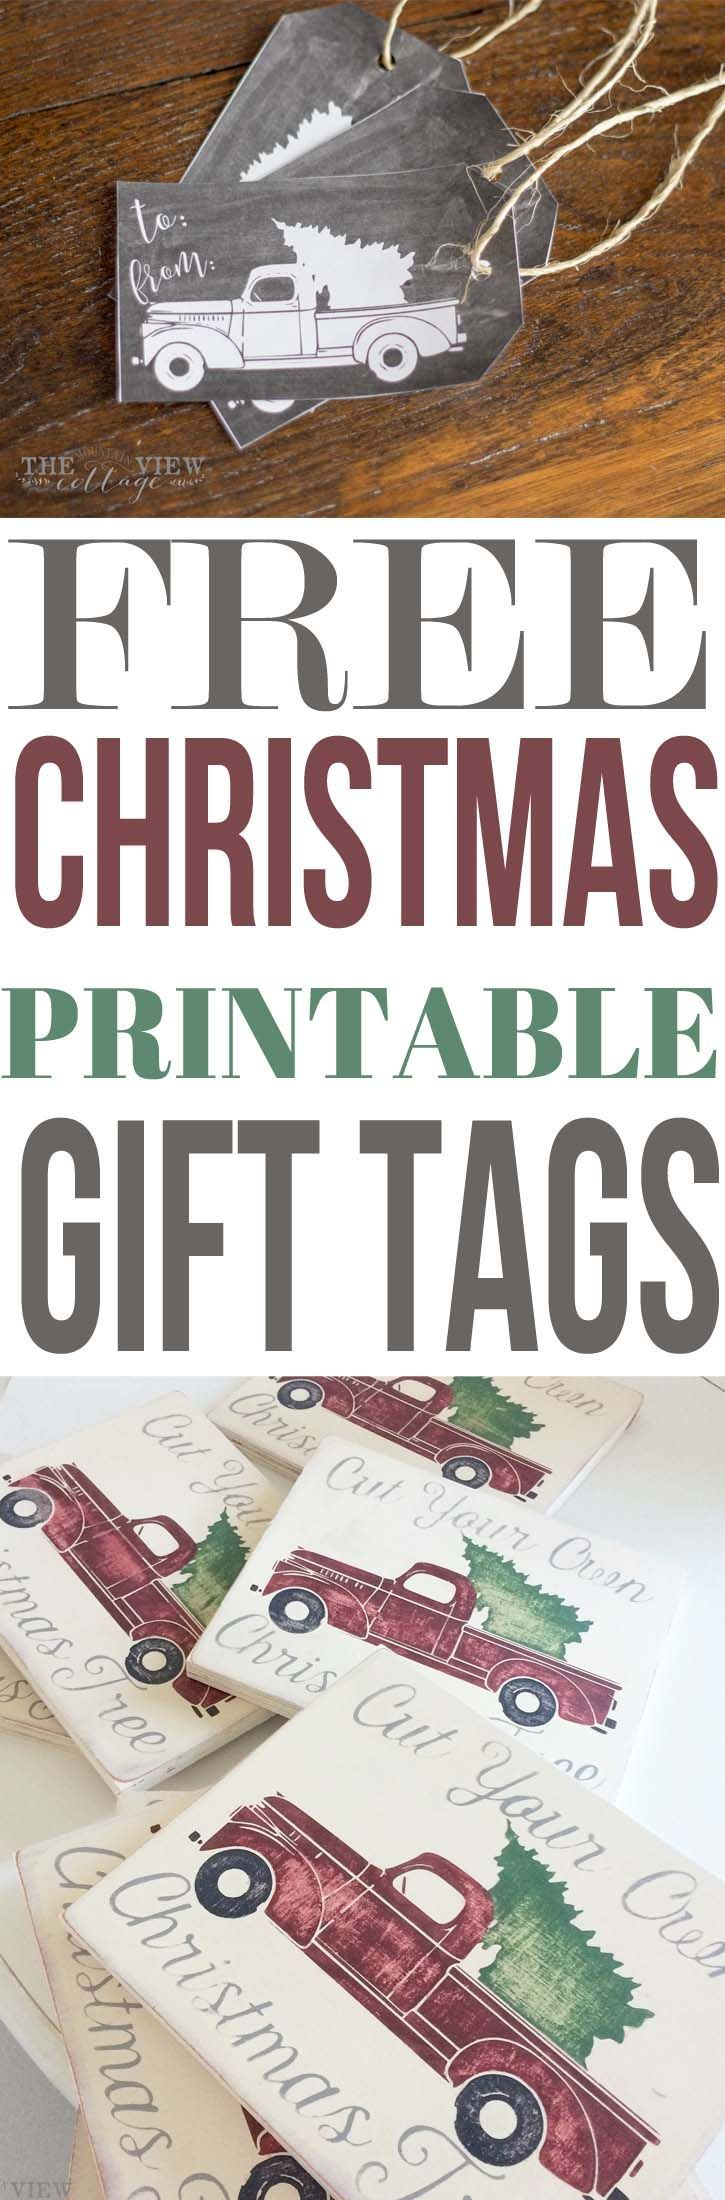 1670 best free gift tags images on pinterest free printables free christmas printable gift tags from the mountain view cottage click here for full download negle Image collections